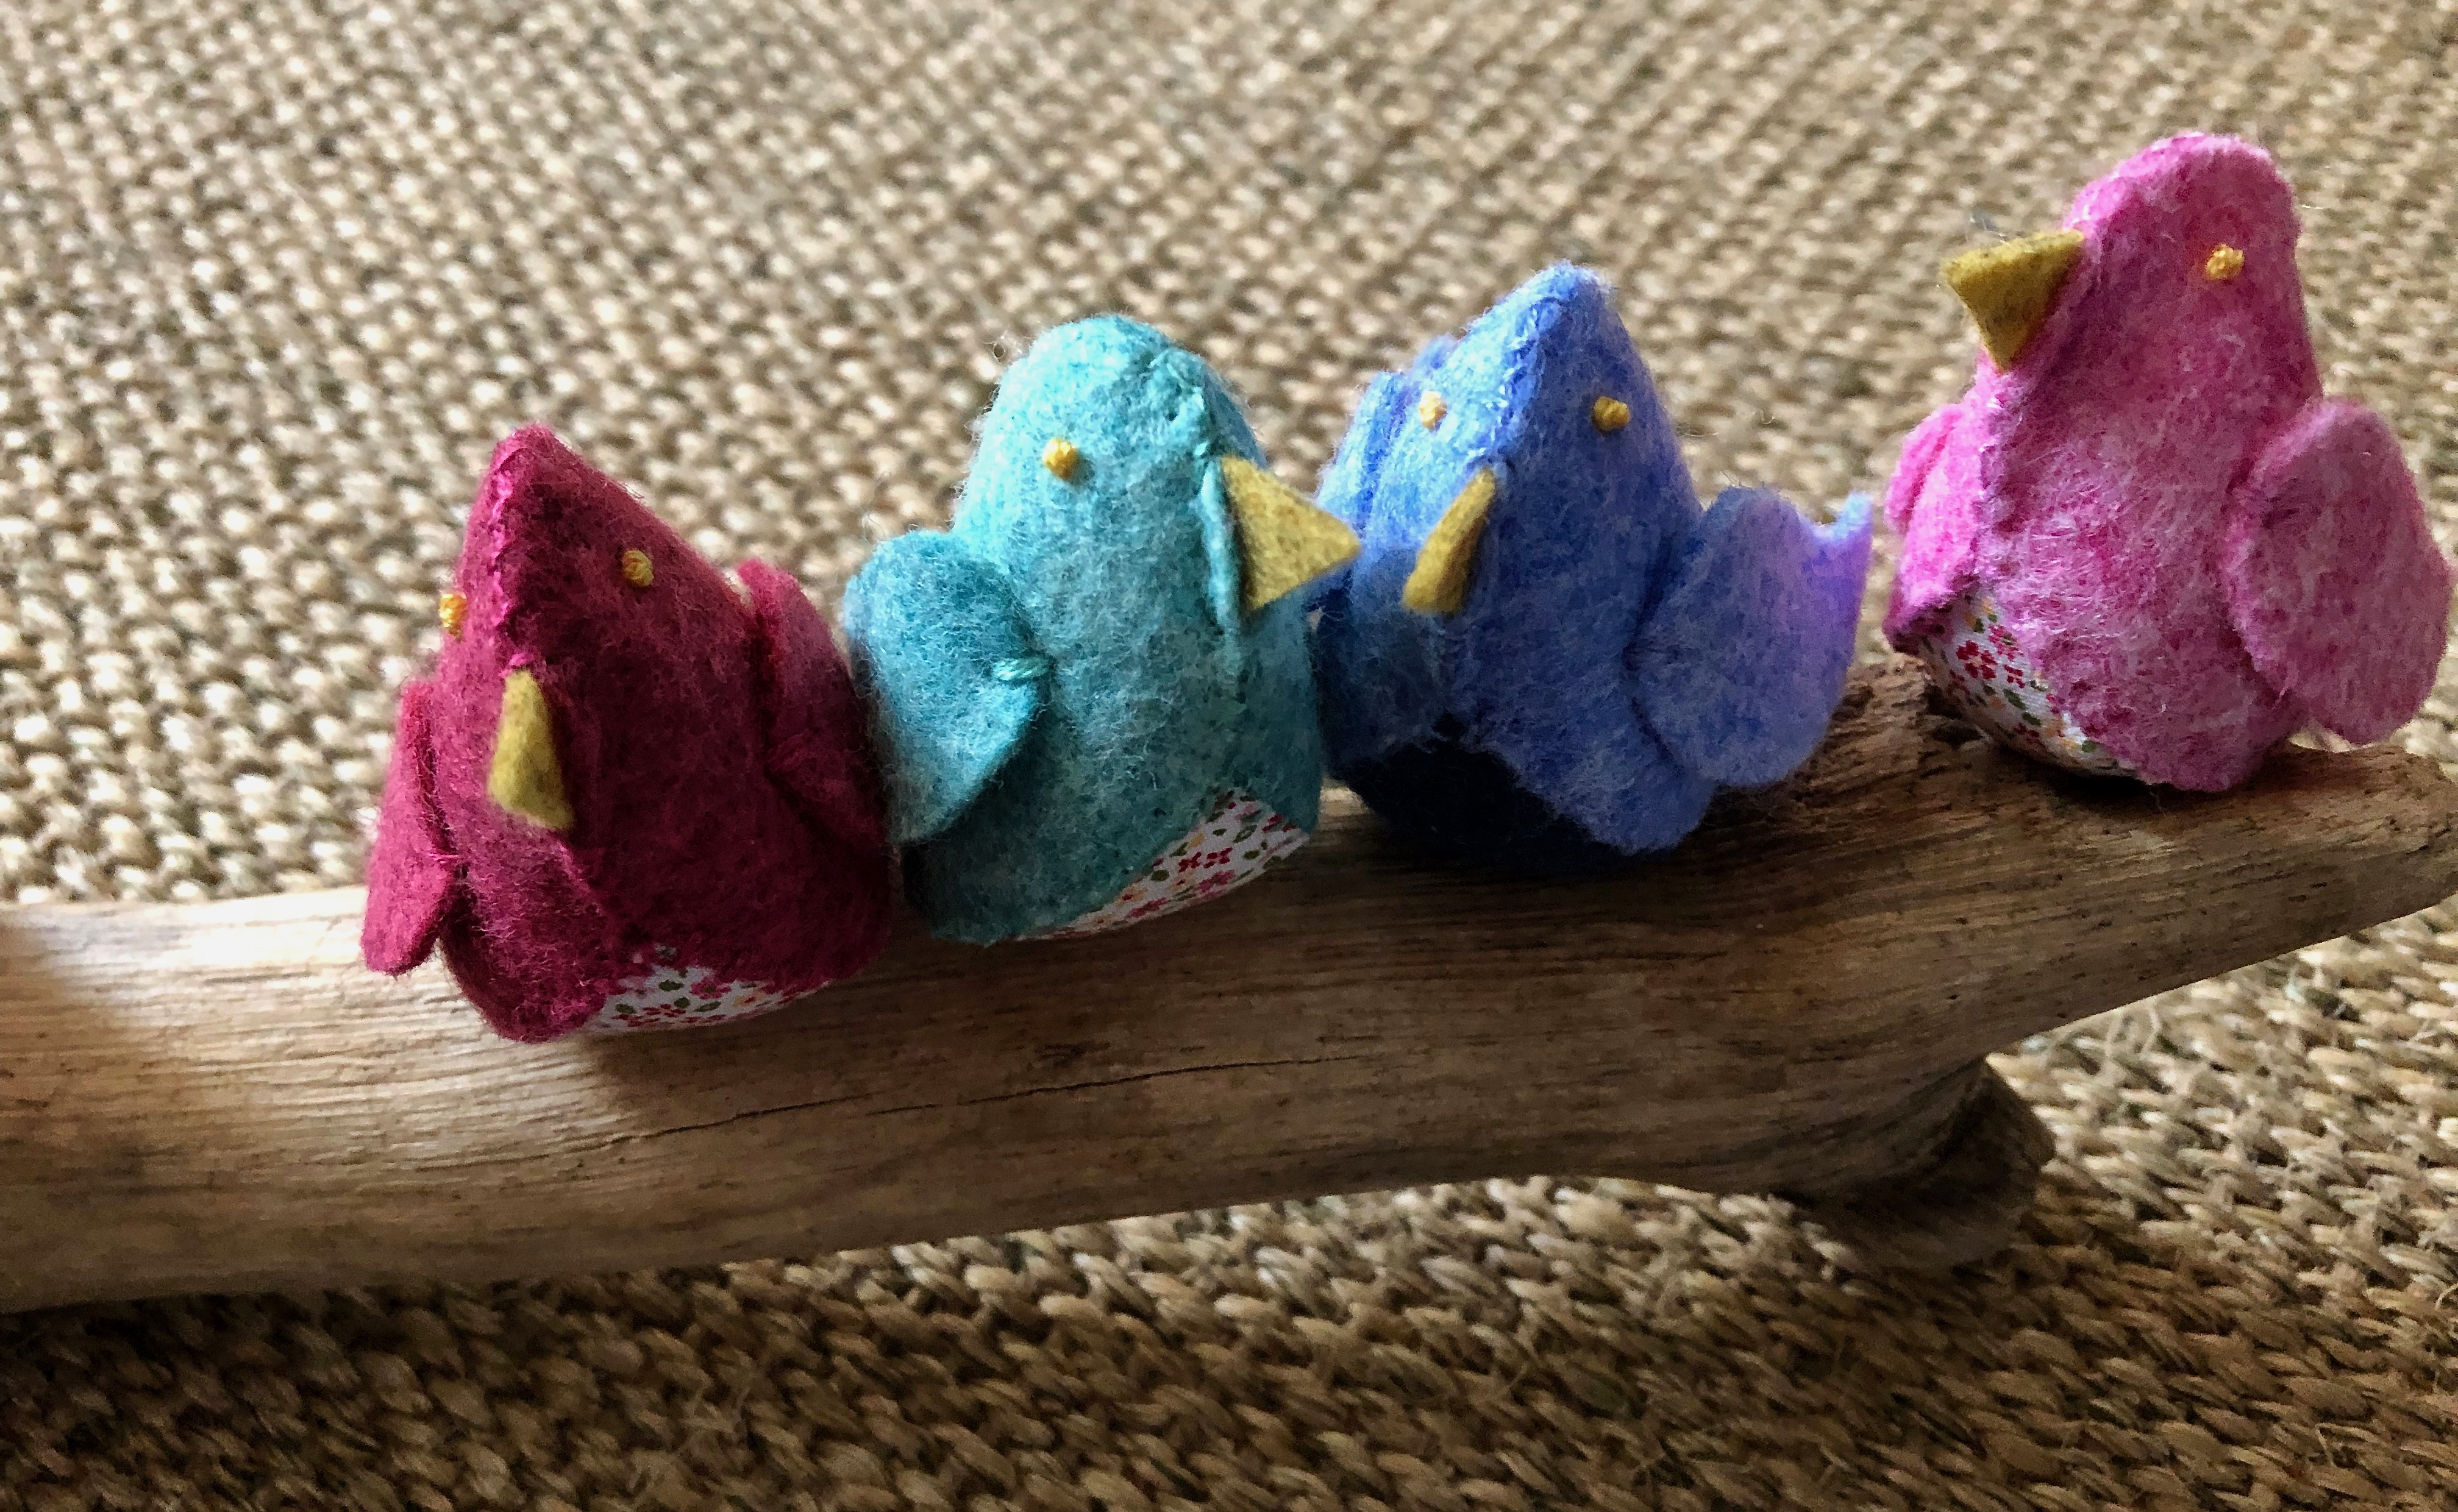 A family of 6 handmade and hand stitched felt and fabric birds sat on a drift wood log. Birds are made in a range of complimentary pastel shades of blue, green and pink with tiny flower fabric chests or wings.